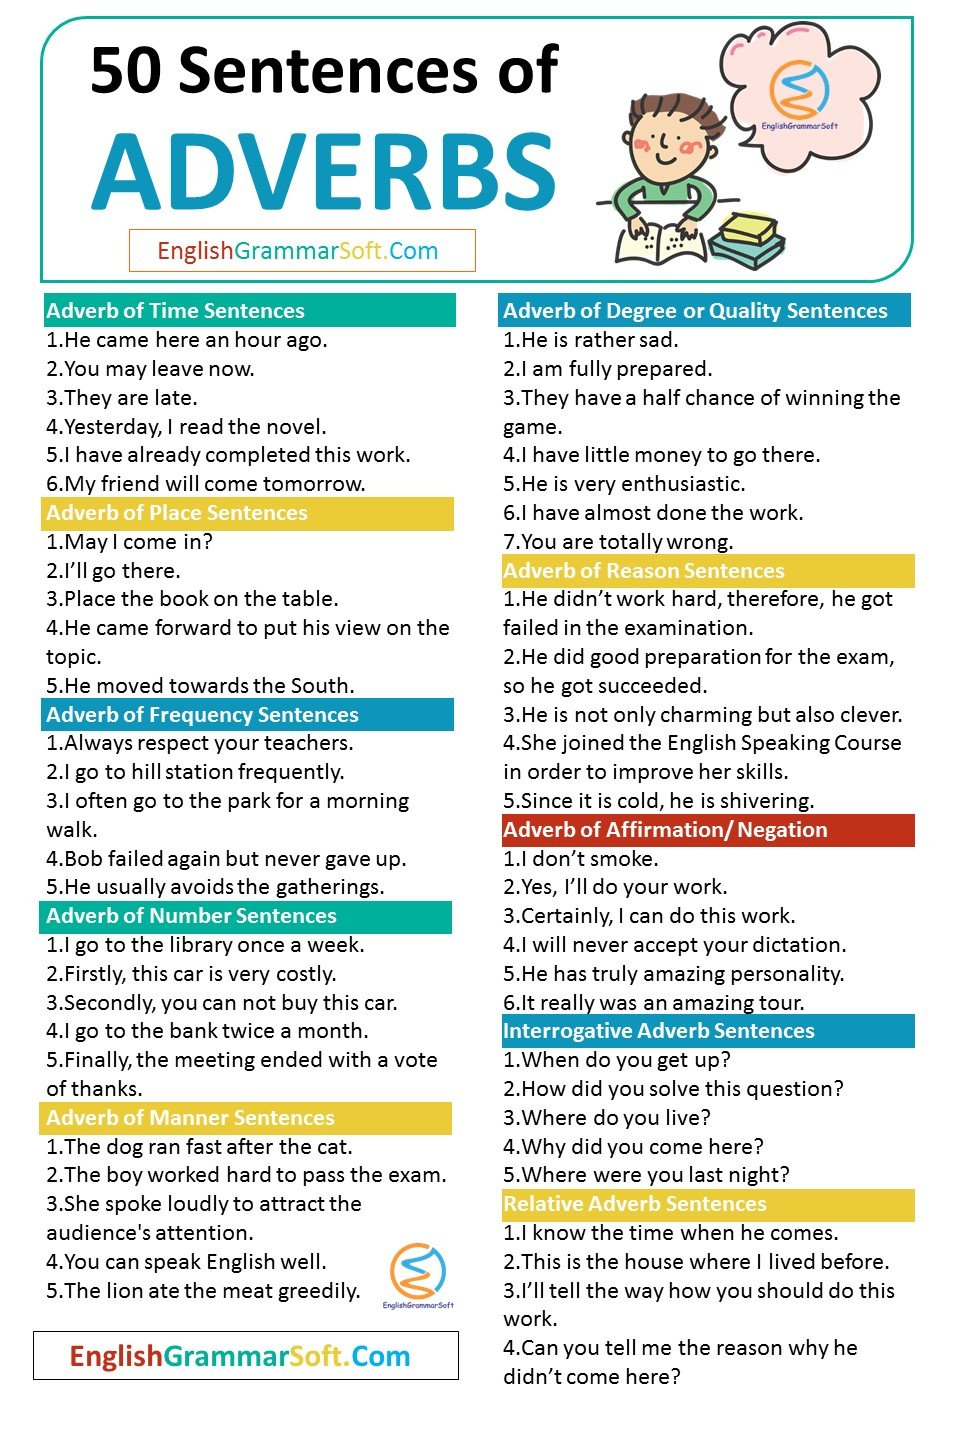 50 Sentences of Adverbs